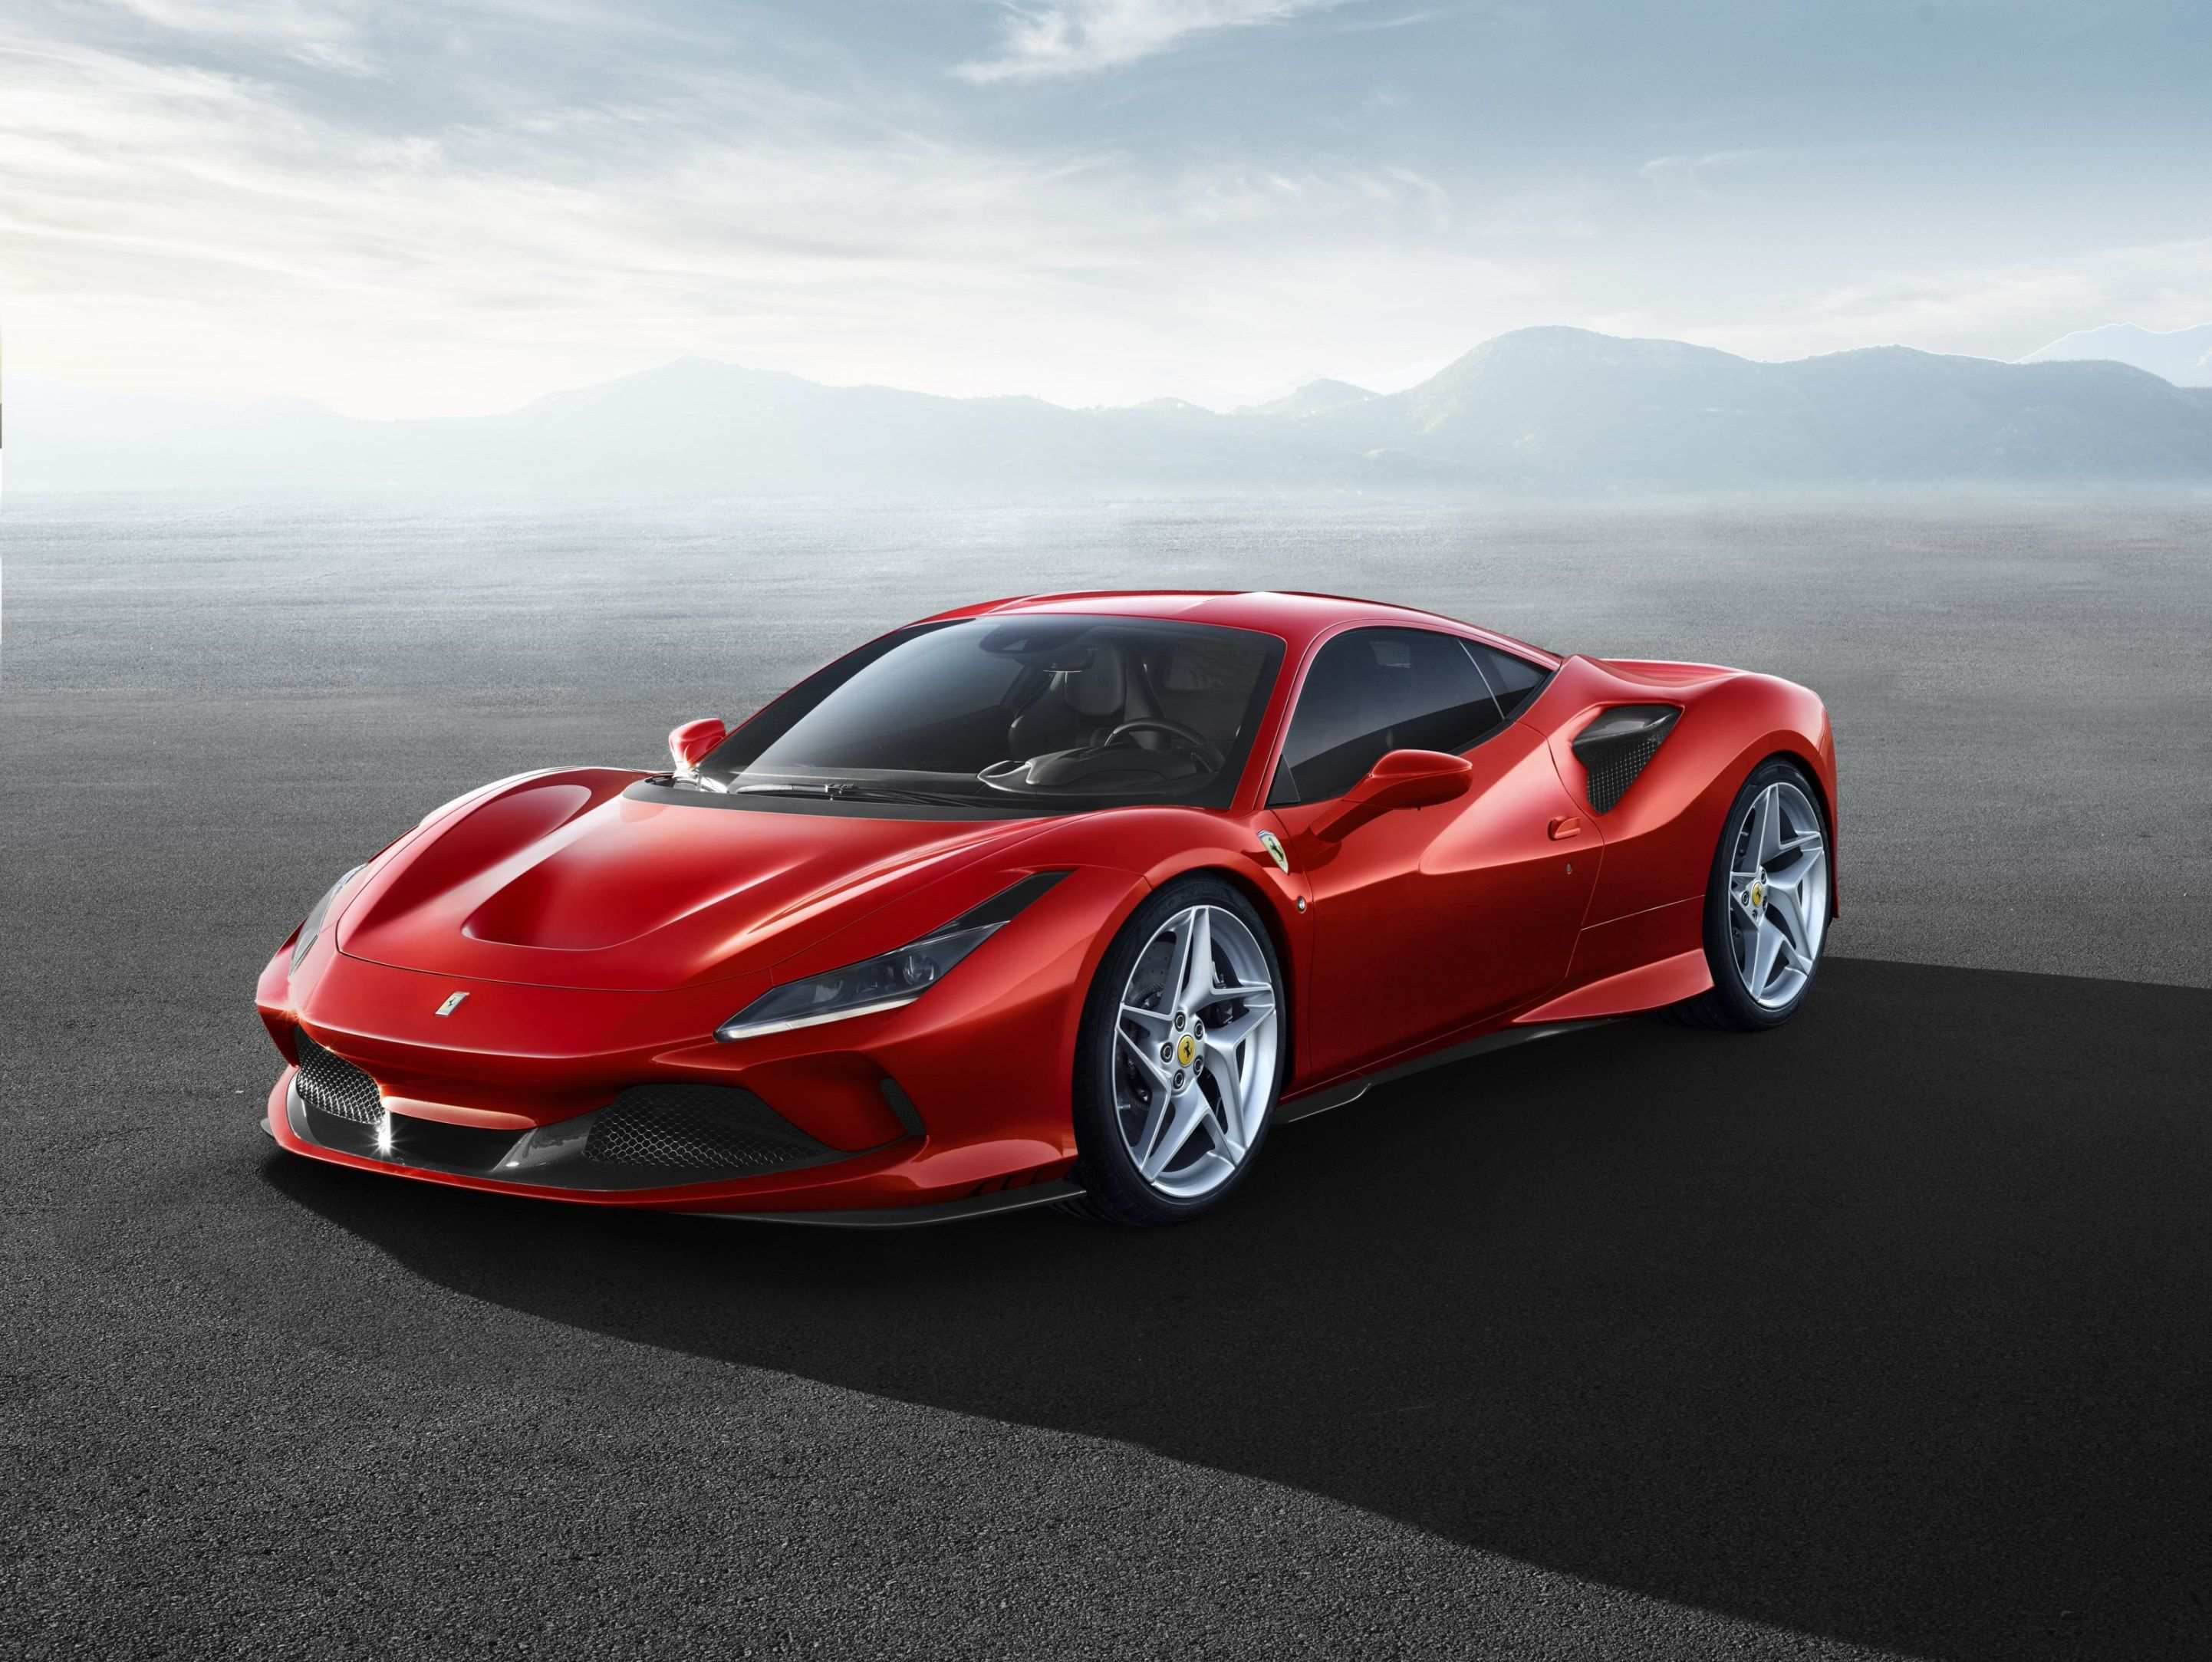 77 The Ferrari 2020 F8 Tributo New Model And Performance